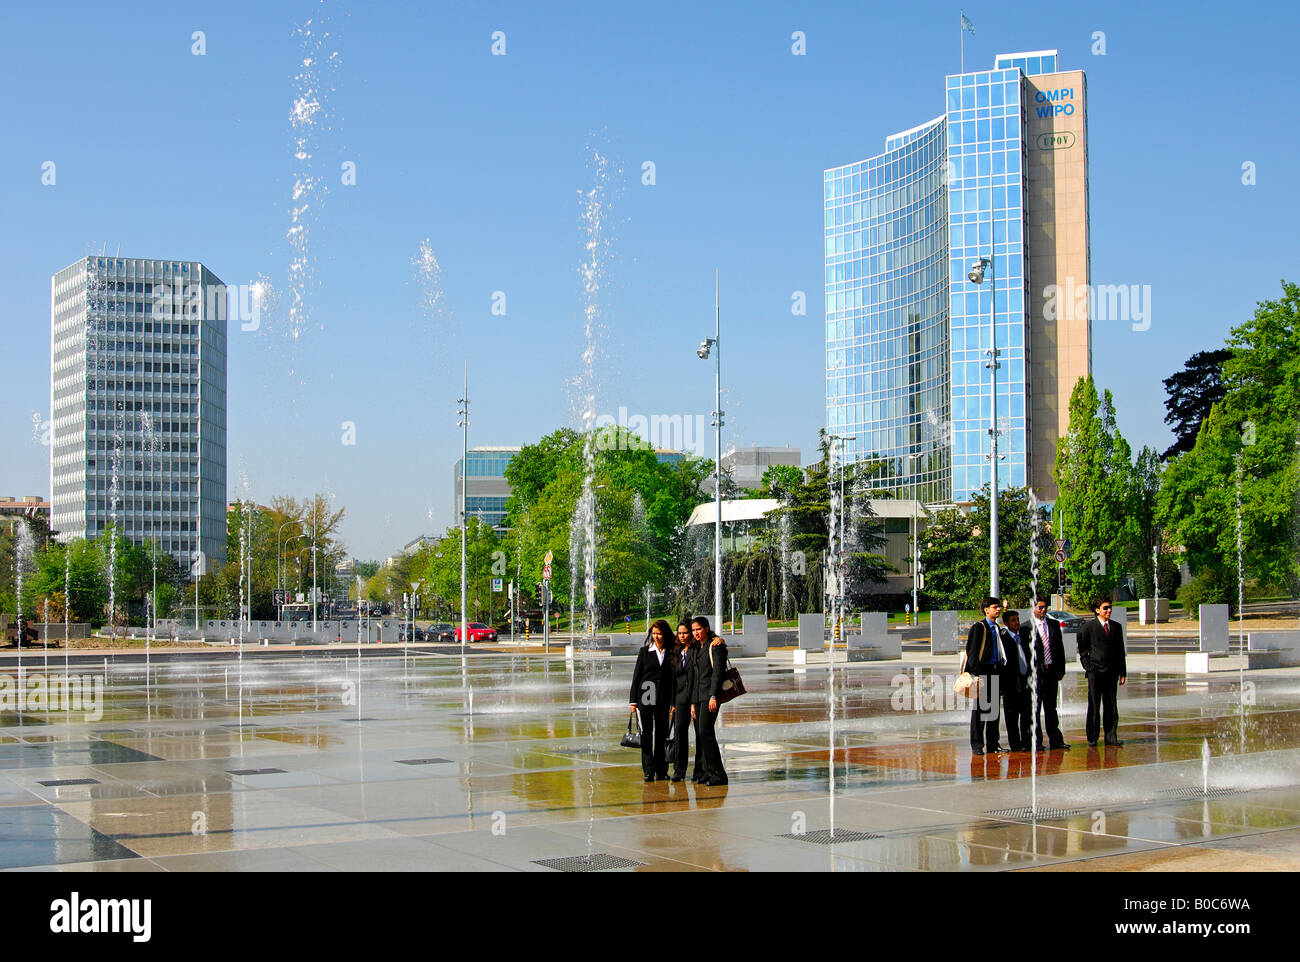 trick fountains on place des nations in geneva itu headquarters stock photo royalty free image. Black Bedroom Furniture Sets. Home Design Ideas